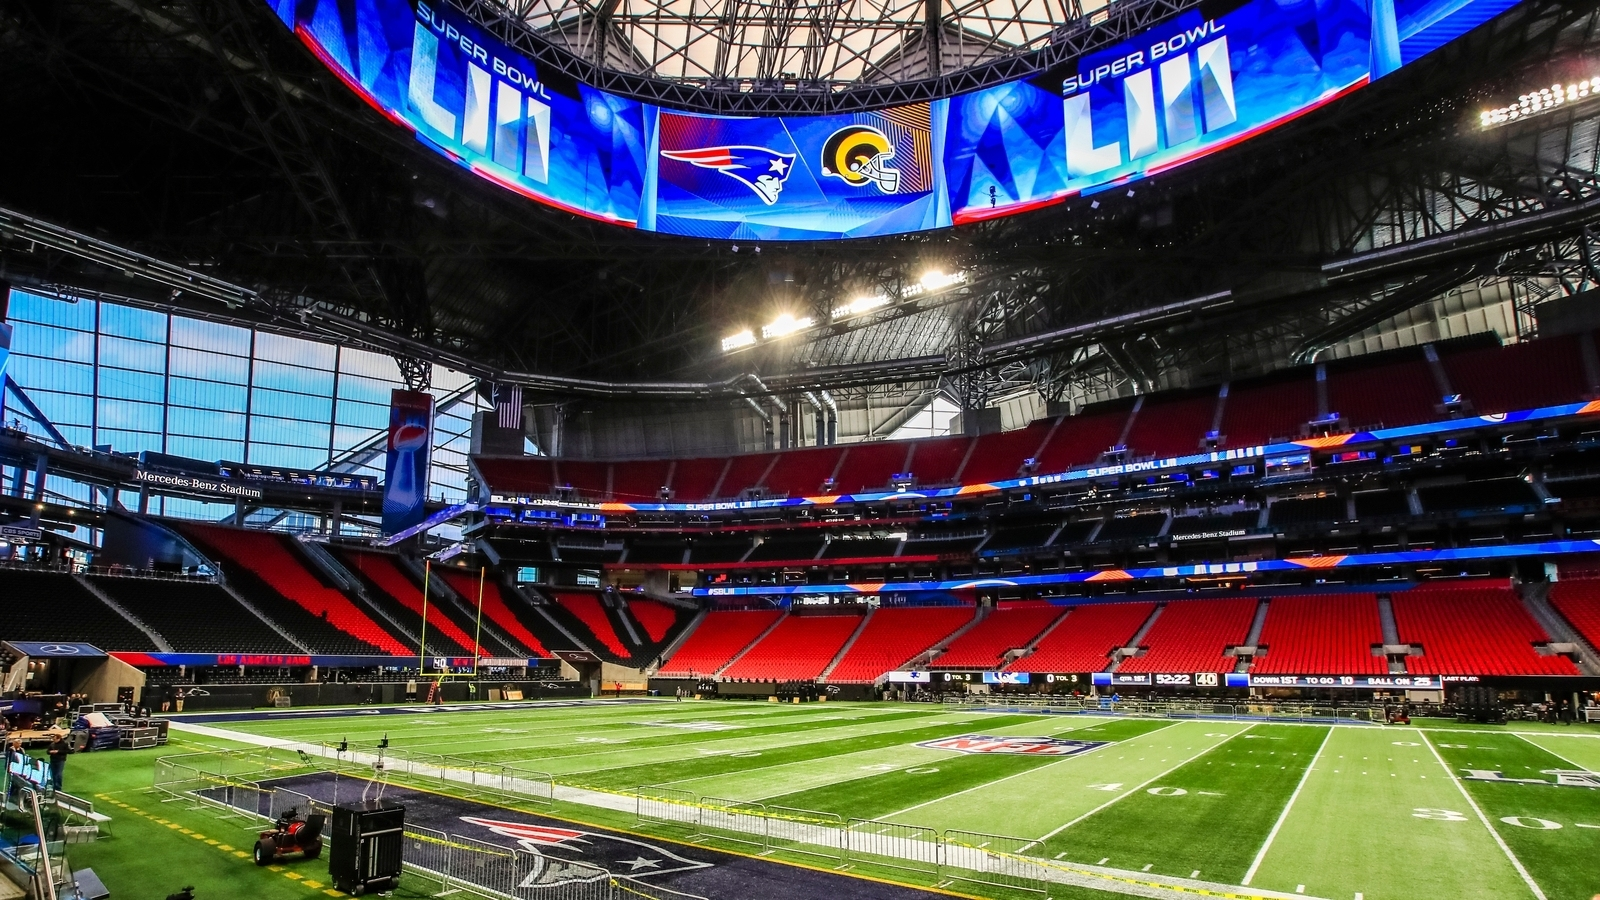 The Numbers Behind Super Bowl Liii with Super Bowl Attendance 2019